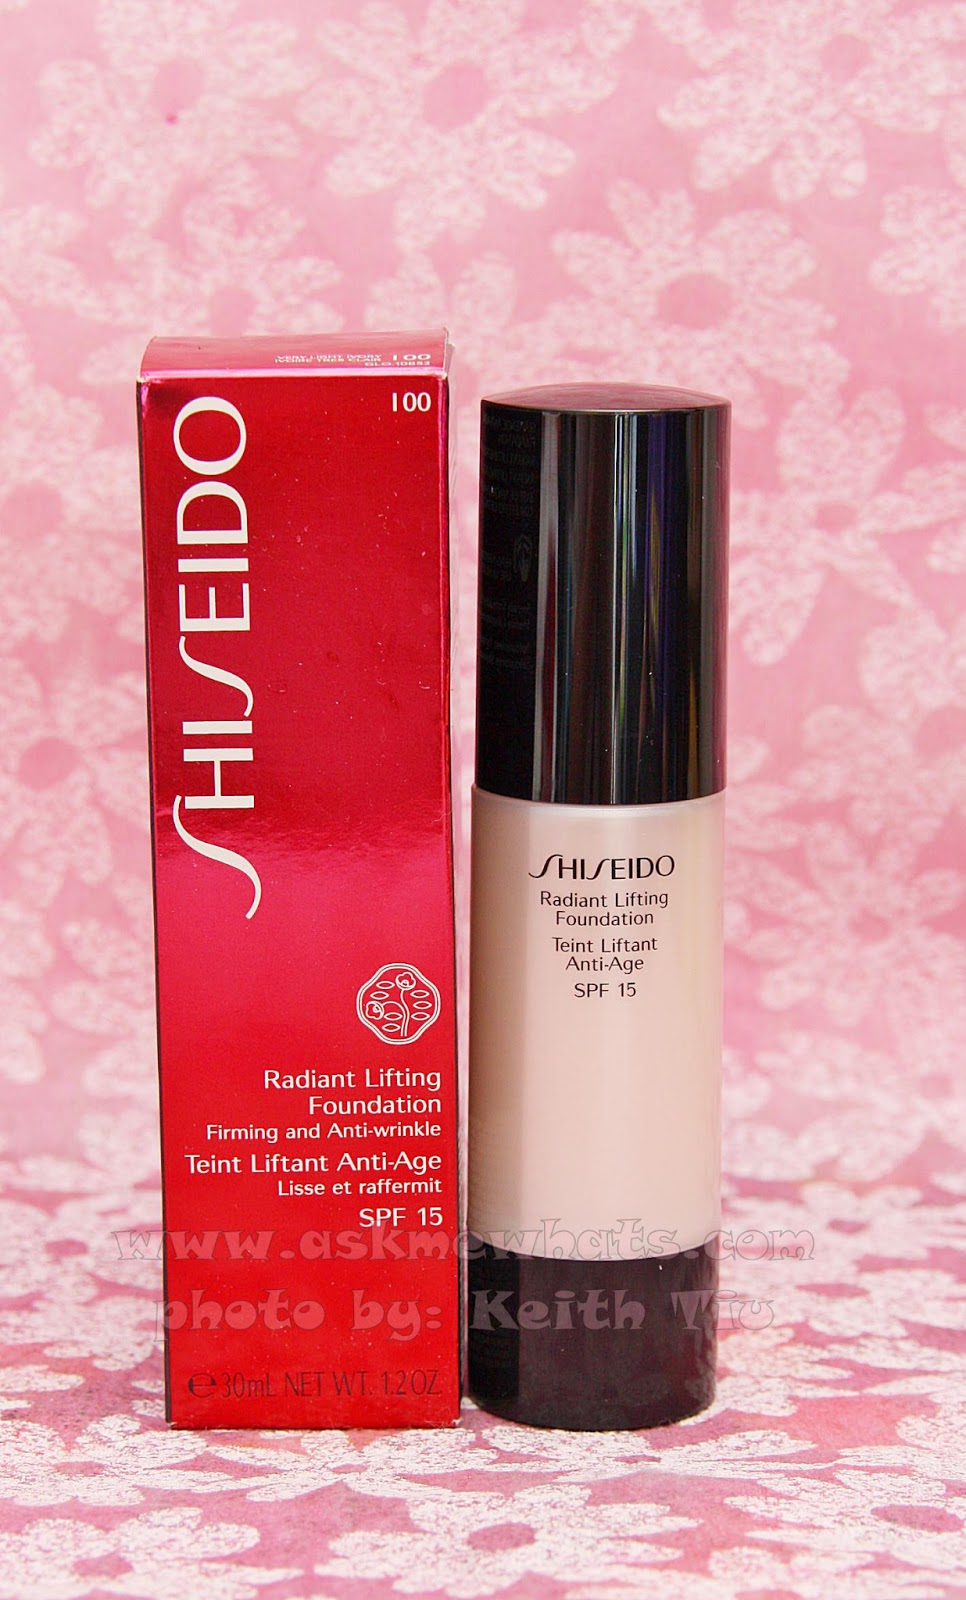 updated shiseido Shiseido is redefining beauty through four innovative textures: gels, inks, powders, and dews the collection— inspired by japanese art and culture— includes 18 new products in 114 different shades crafted to enhance your eyes, lips, and face.